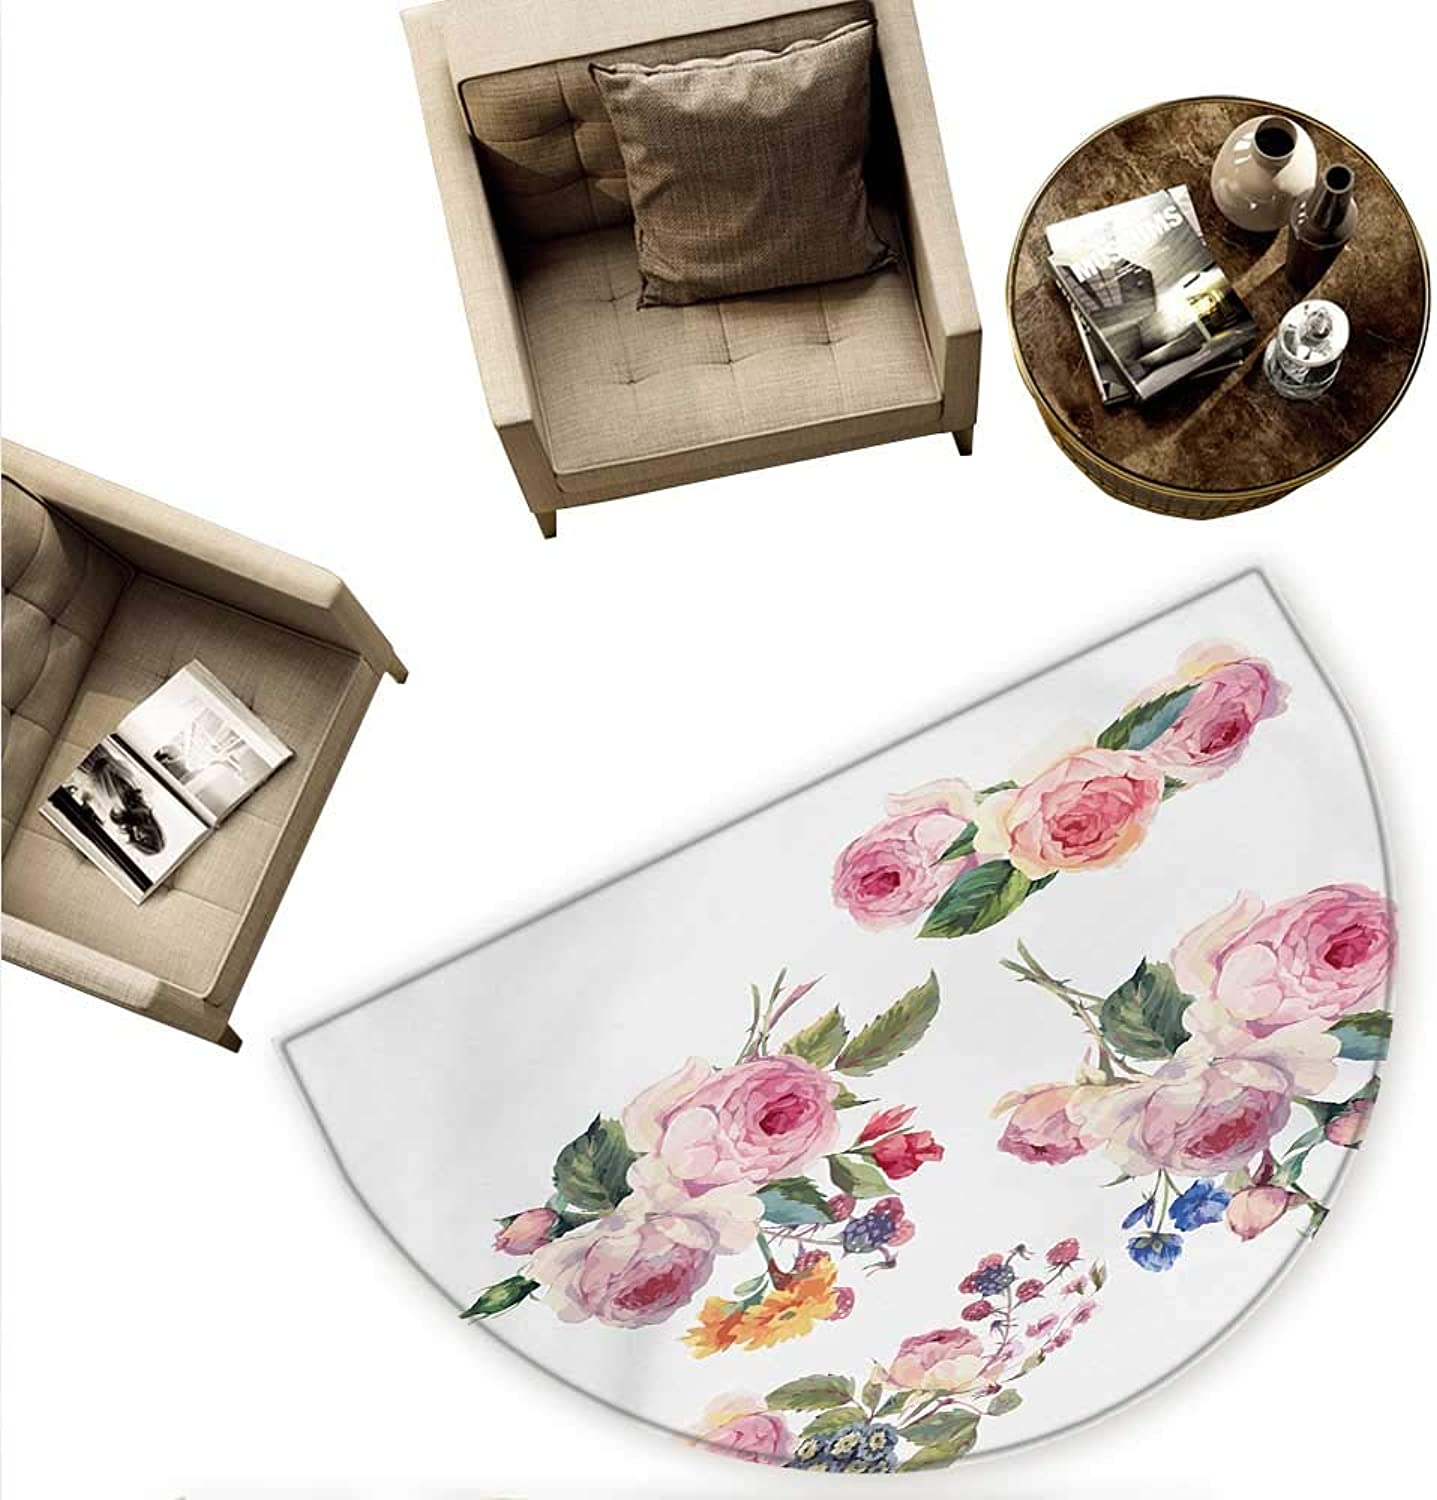 pink Semicircle Doormat Vintage Floral Bouquets with English pinks Wildflowers Botanical Natural Summer Time Halfmoon doormats H 70.8  xD 106.3  Multicolor